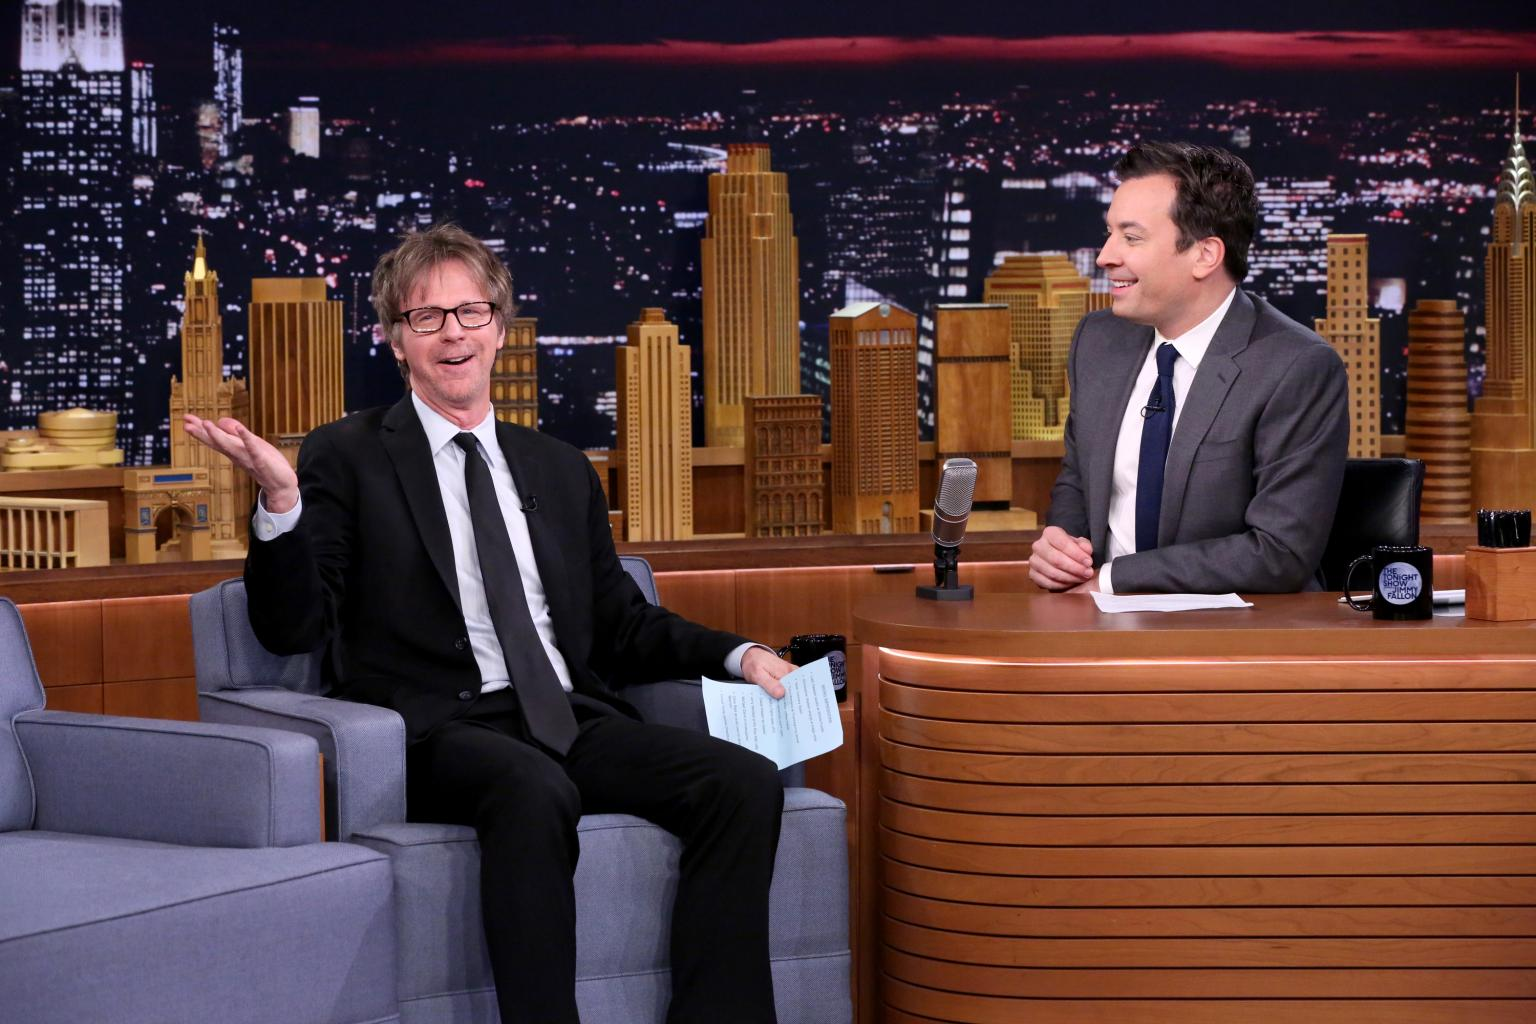 Dana Carvey Kills With        Micro-Impressions      '  Of Trump, Pacino             And Jimmy Fallon             On        Tonight